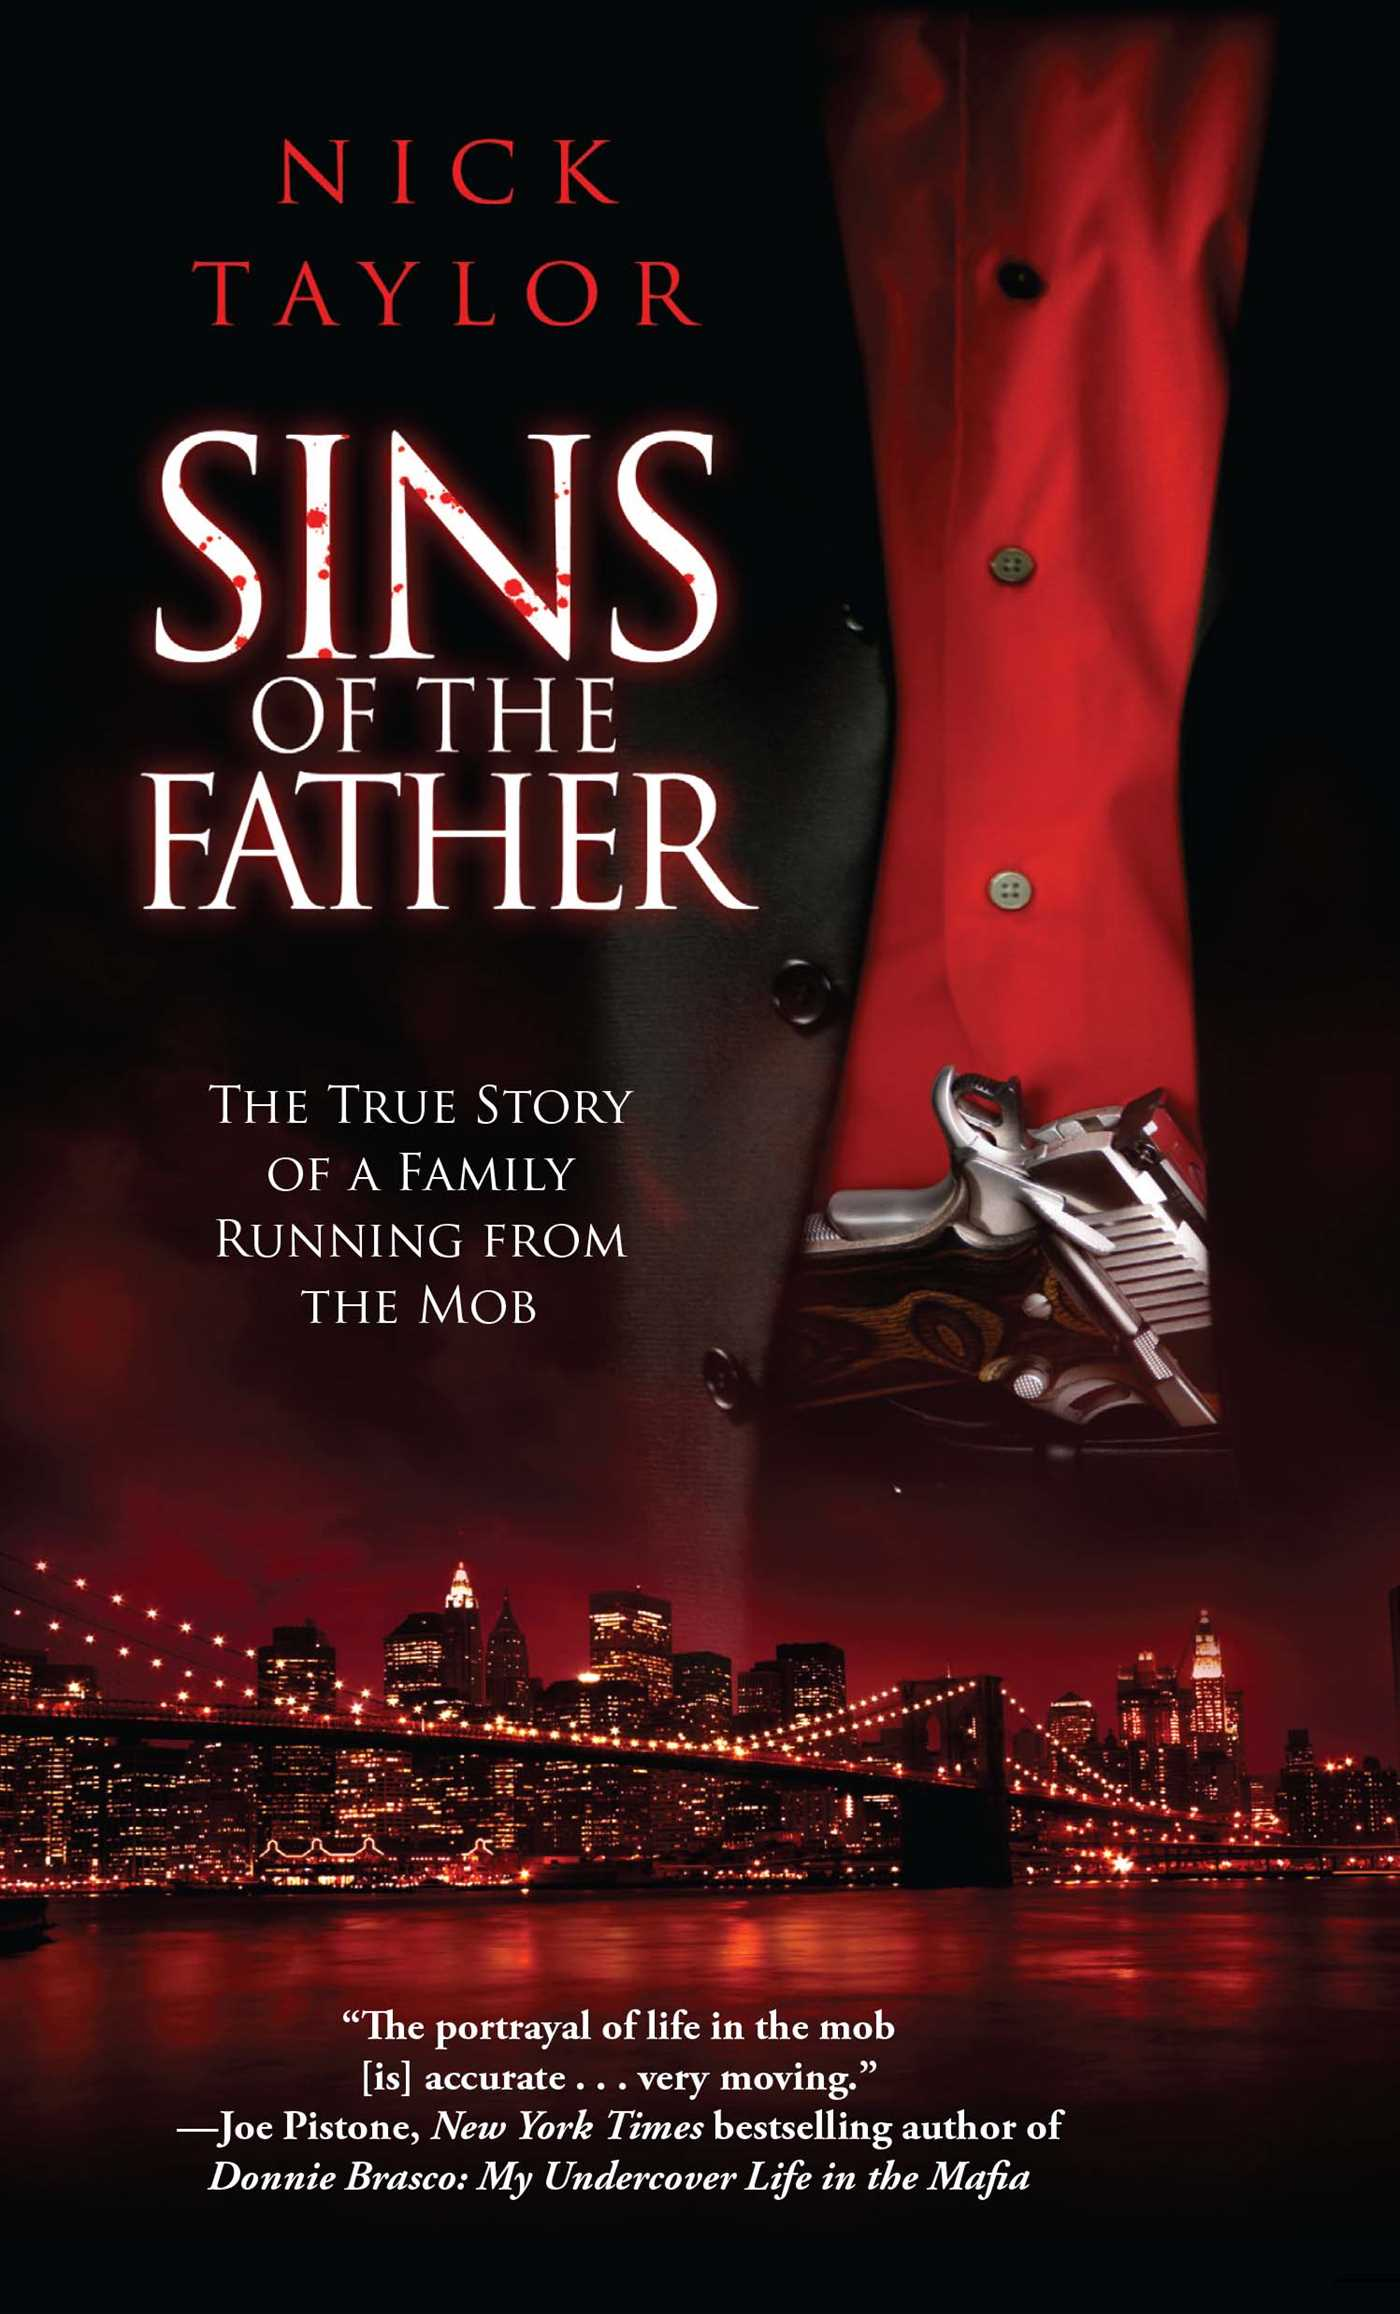 Sins of the father 9781451668674 hr